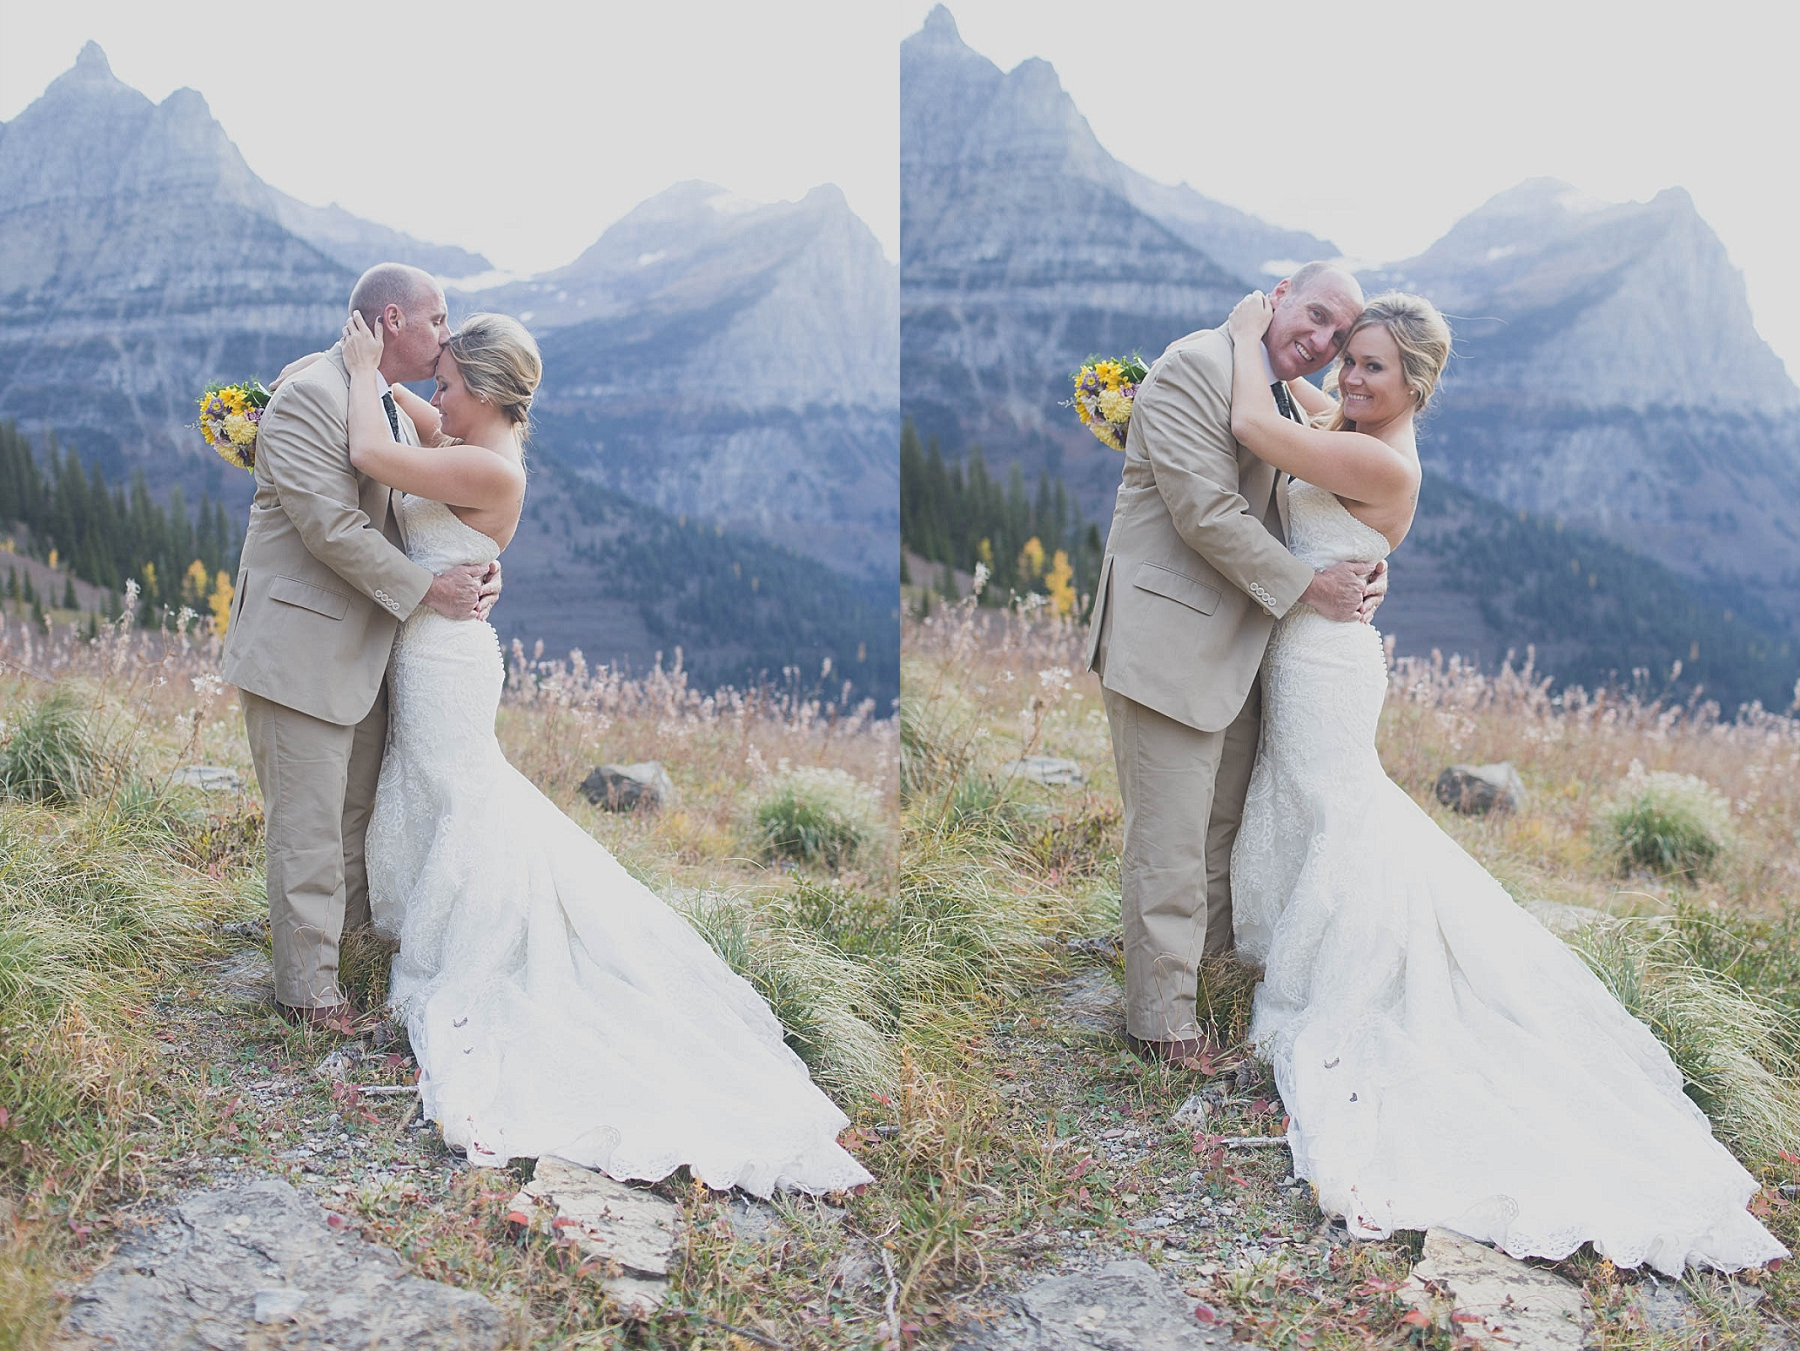 Jennifer_Mooney_photo_day_after_session_glacier_park_elegant_wedding_bride_groom_destination_-43.jpg